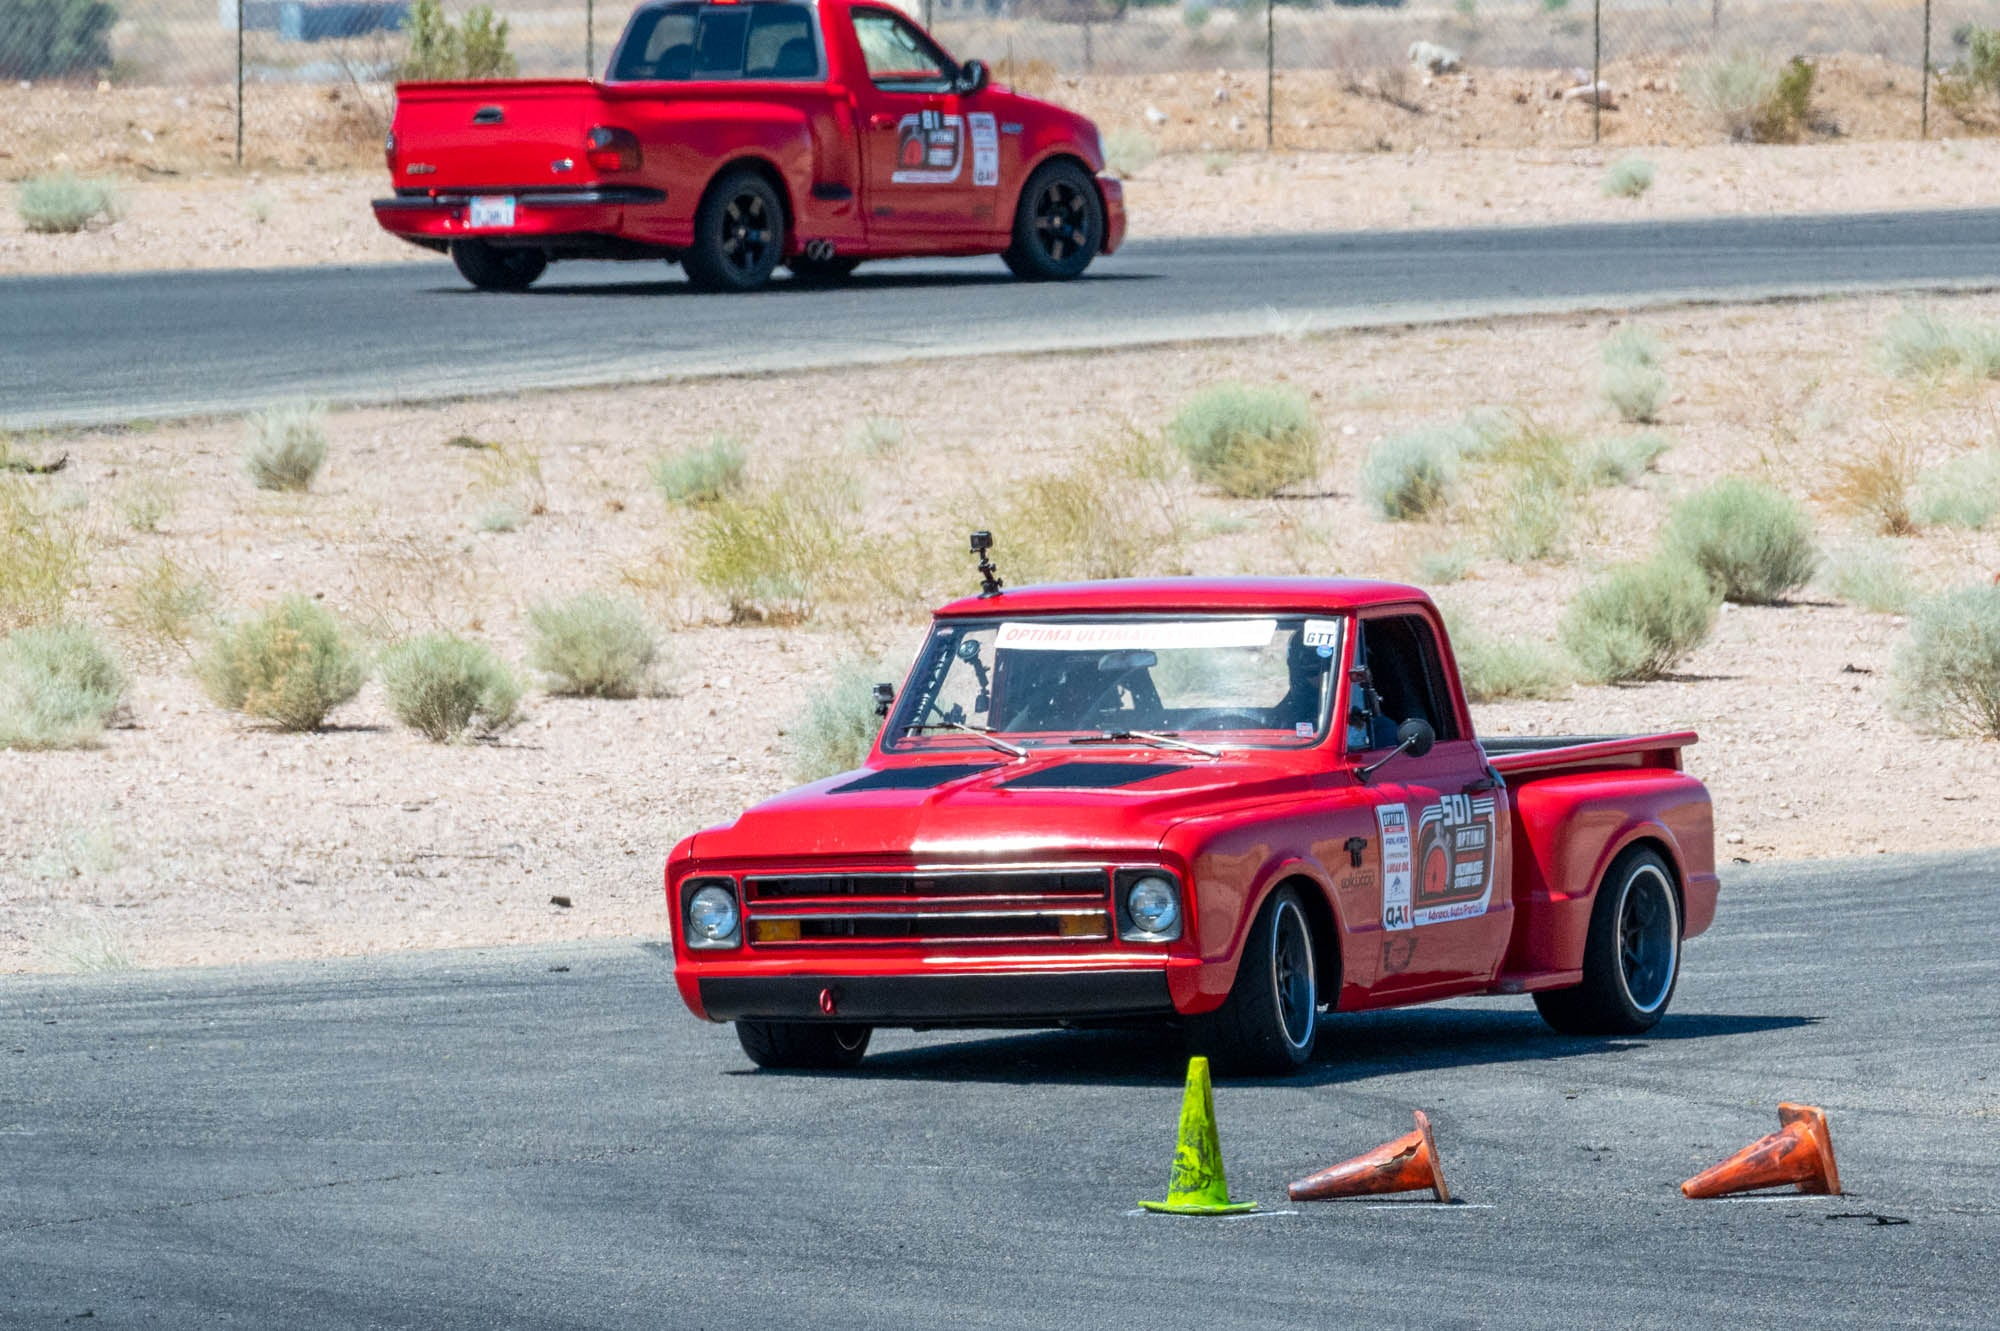 Ultimate Street Car 1967 Chevy C10 and 1999 Ford Lightning pickup trucks